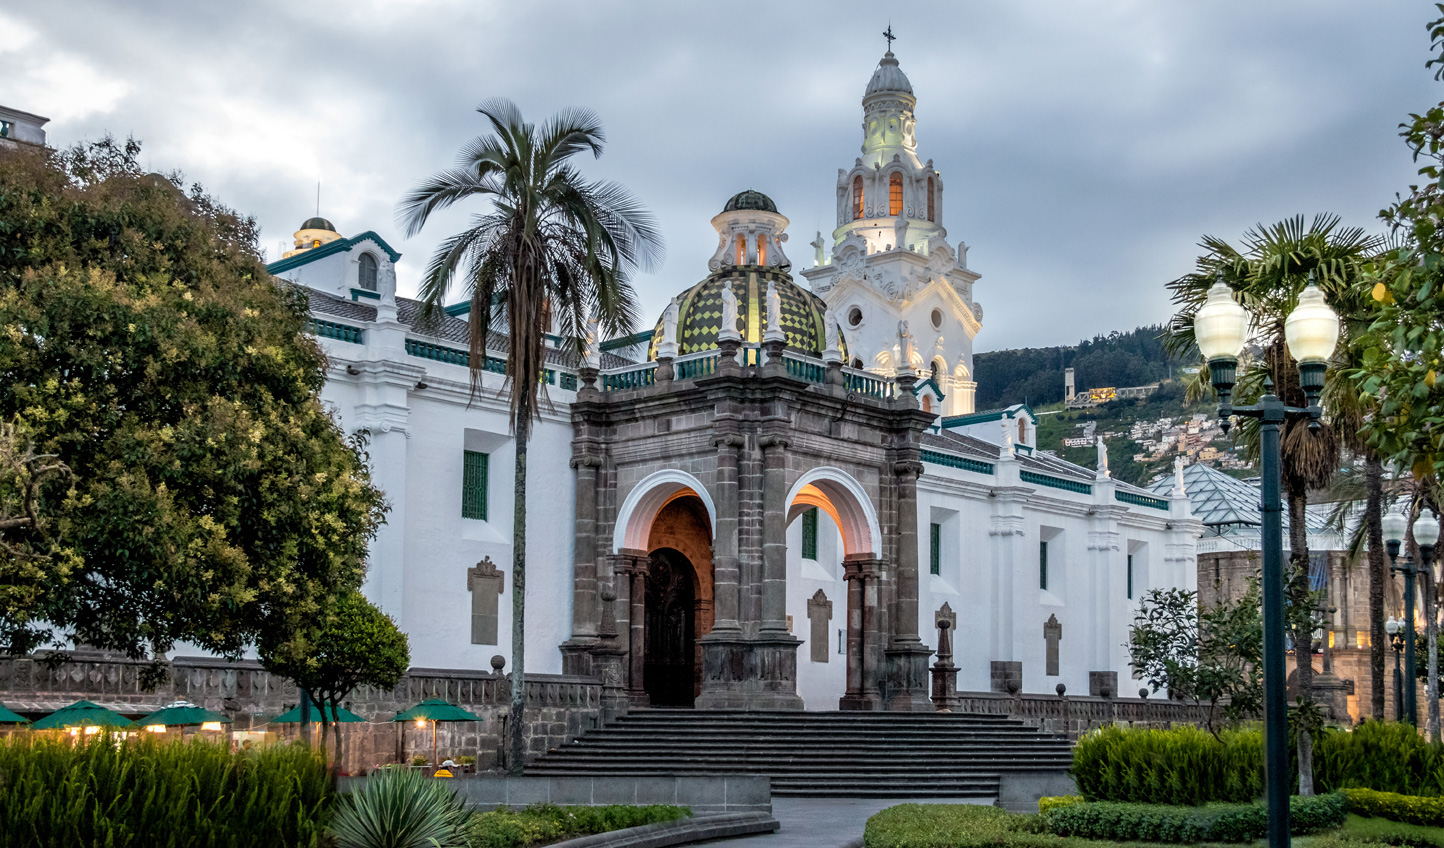 Visit the Metropolitan Cathedral of Quito